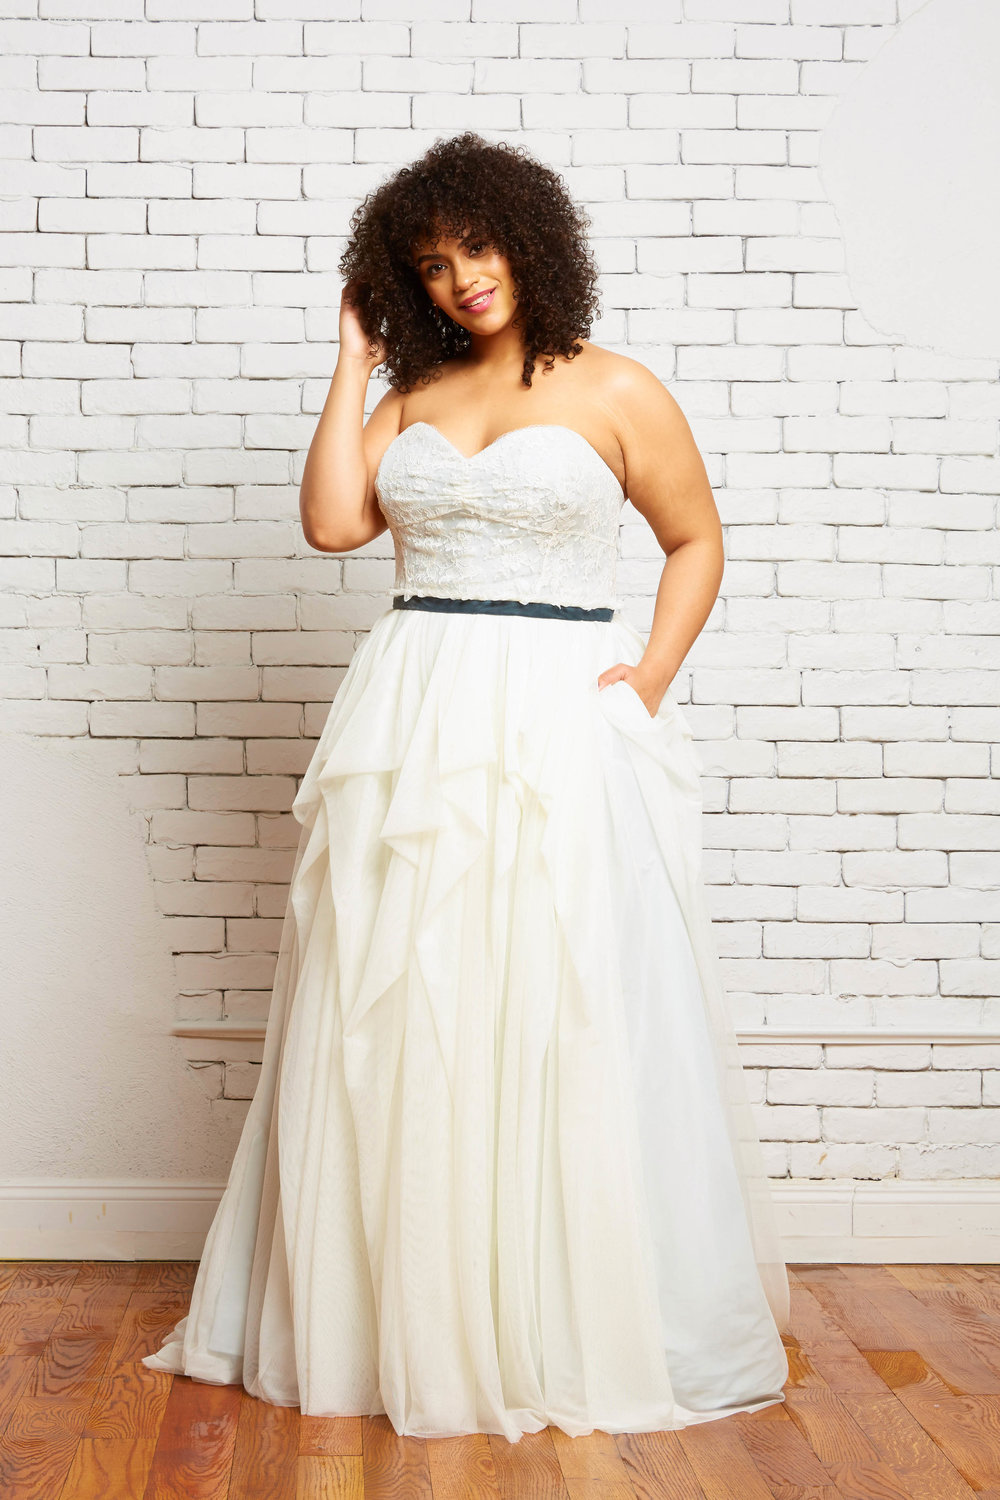 28A. Mia-Elizabeth Front-Rebecca Schoneveld-2-41_sweetheart_neckline_strapless_a_line_lace_tiered_tulle_skirt_color.jpg